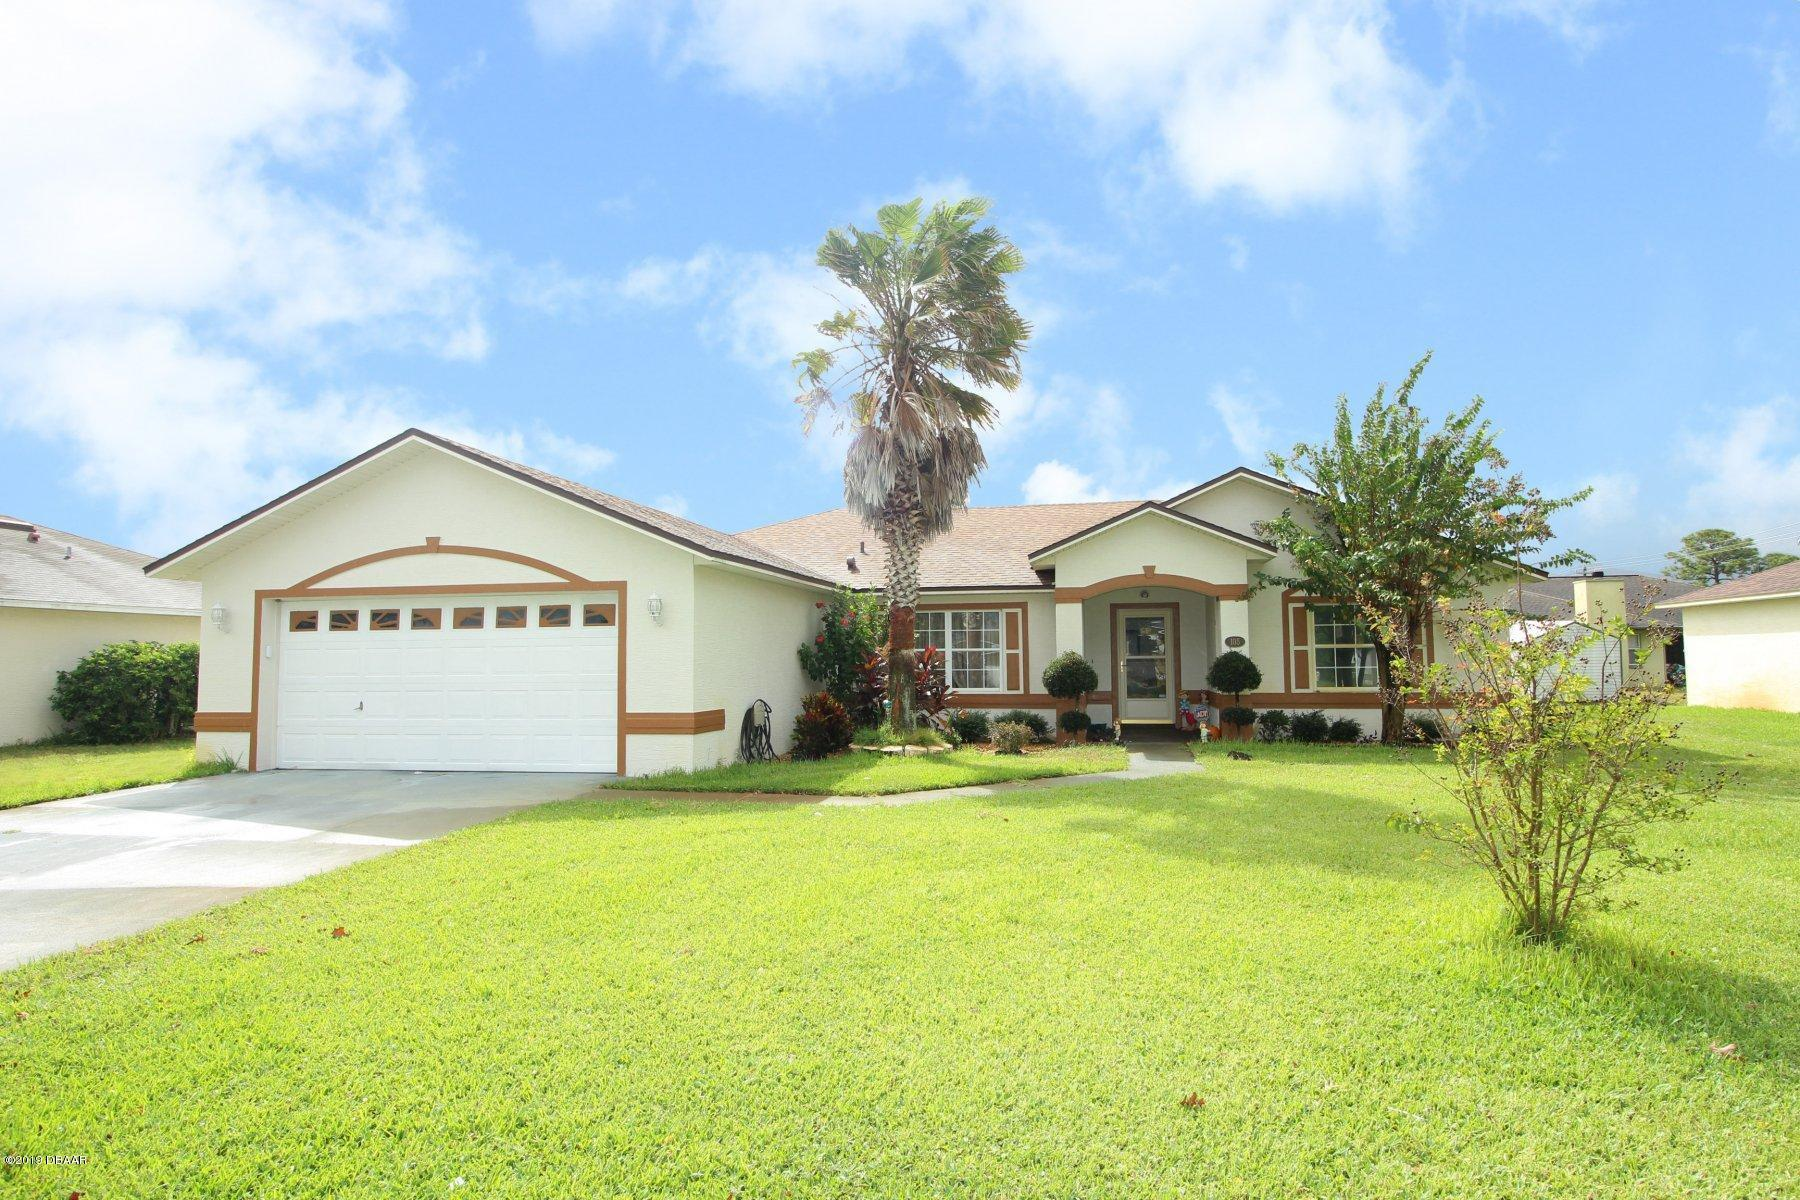 One of Holly Hill 4 Bedroom Homes for Sale at 105 Heathrow Drive